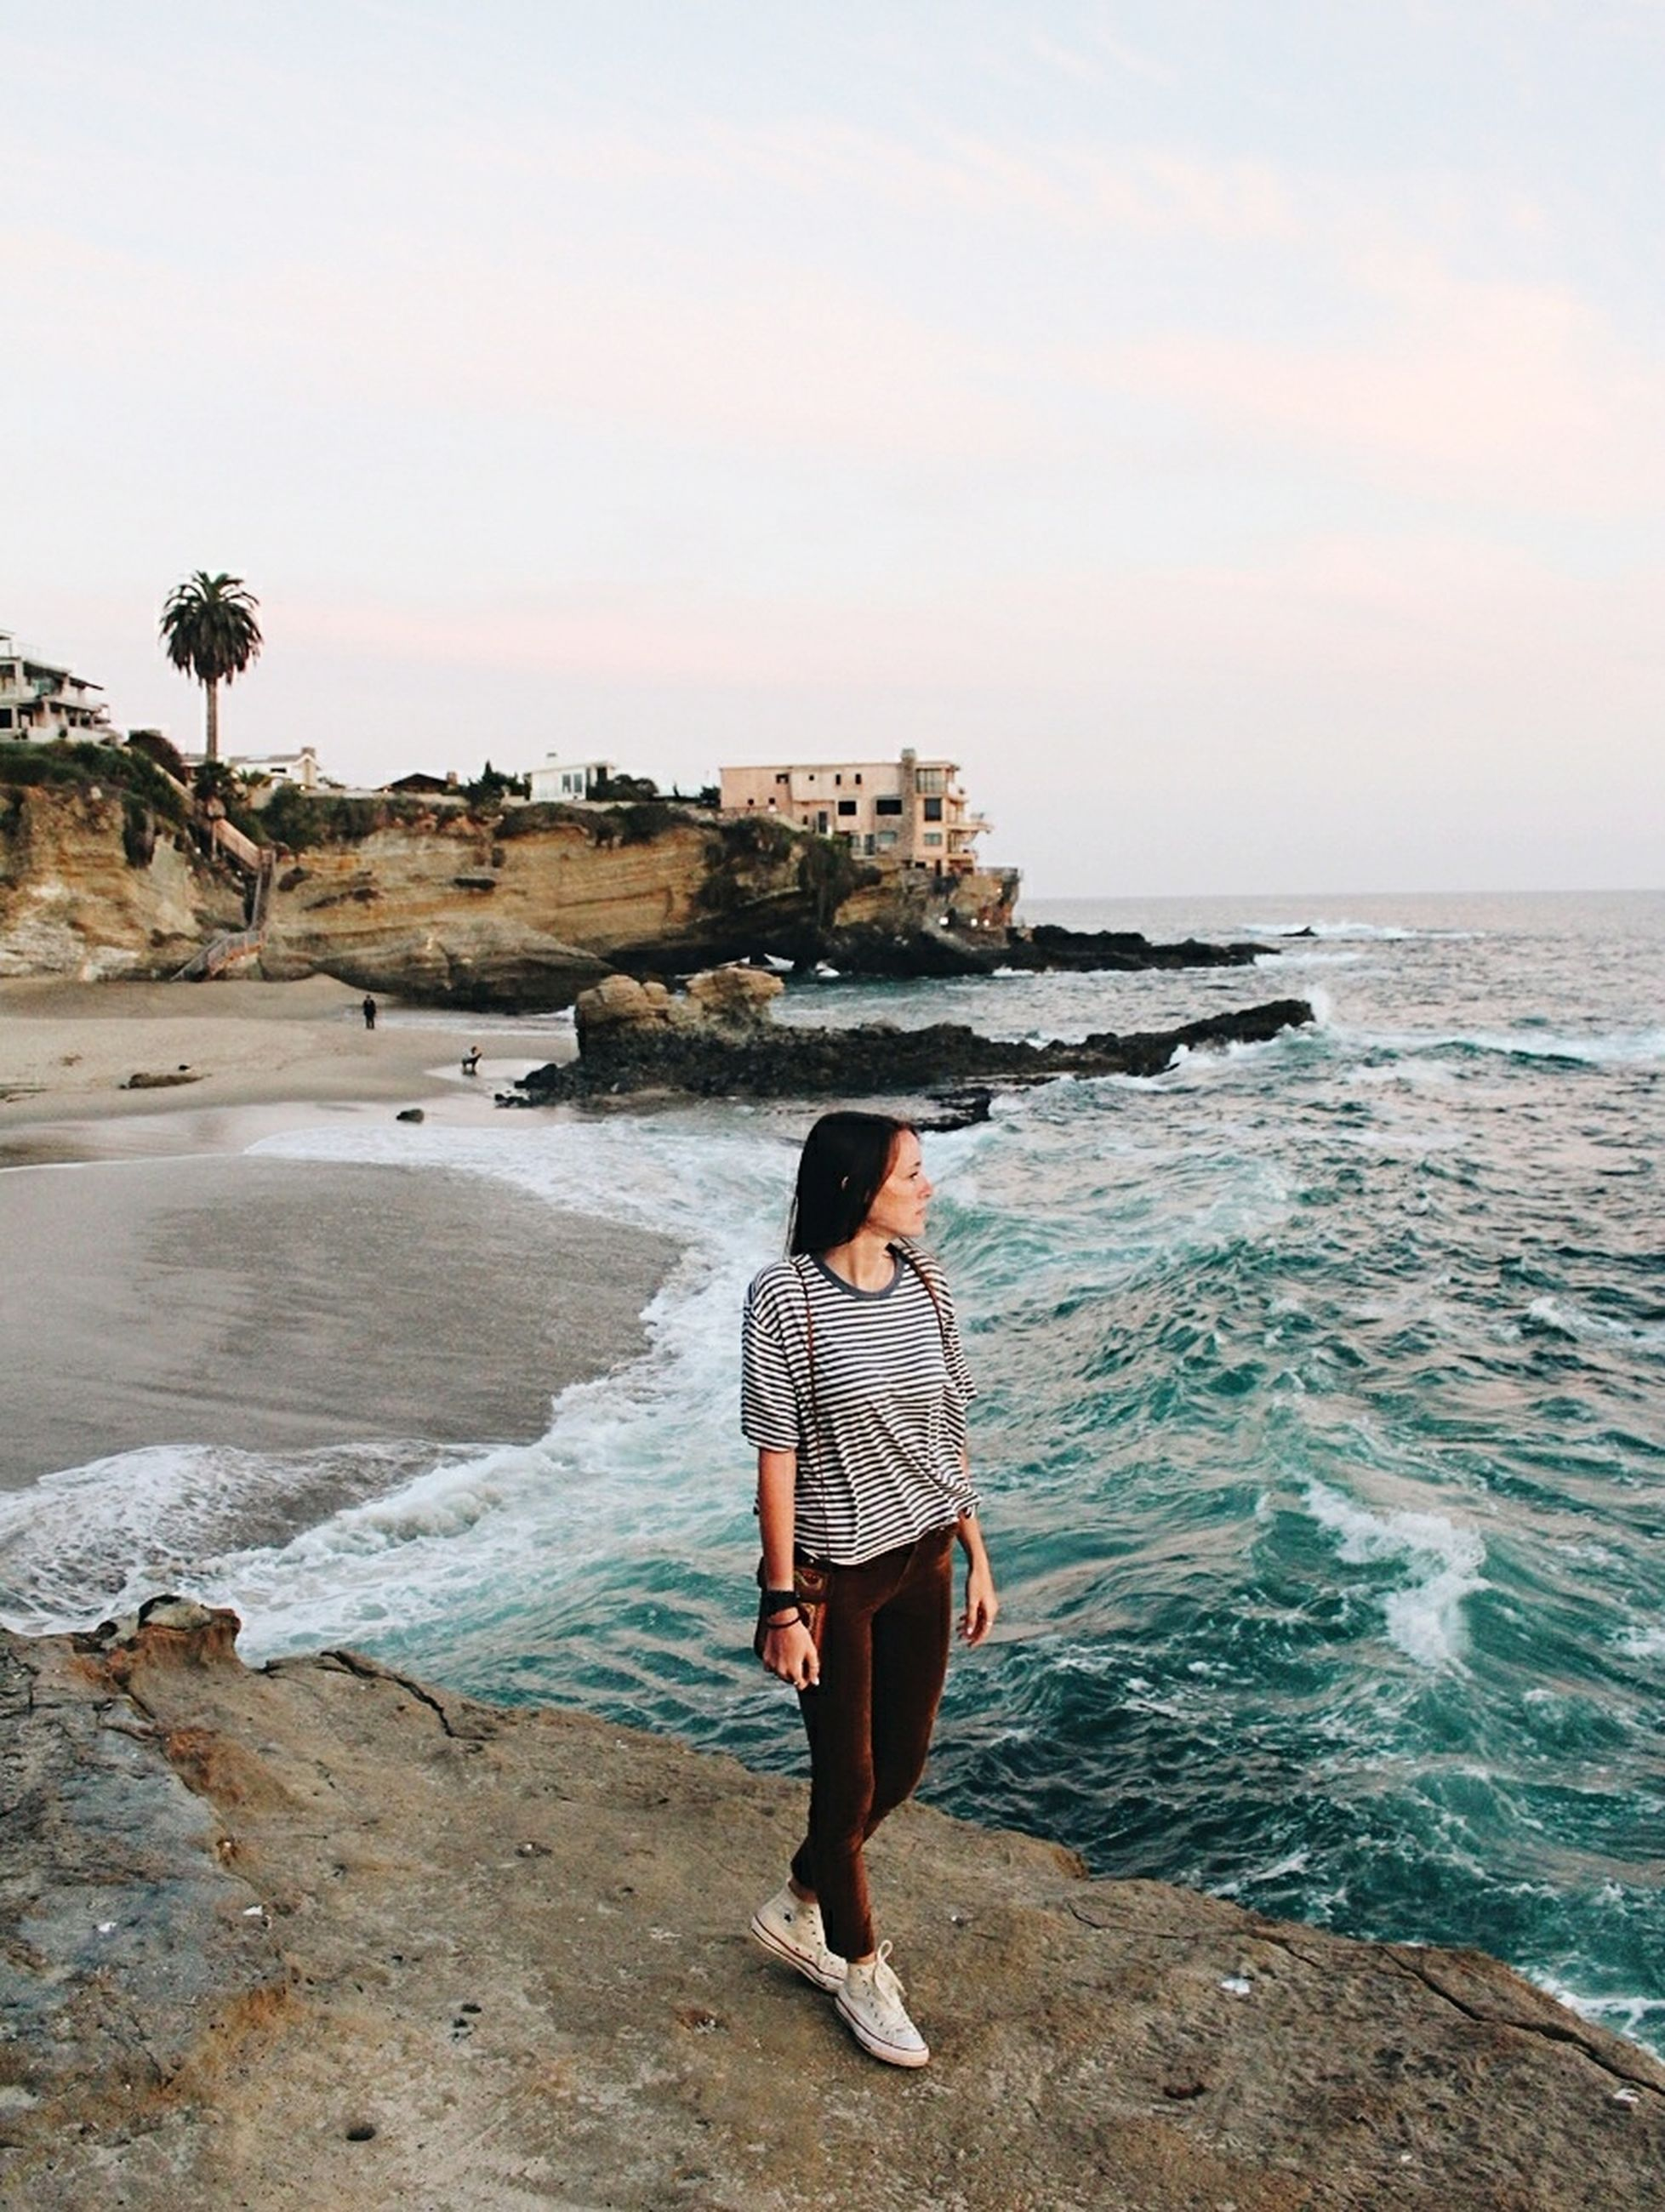 water, sea, real people, lifestyles, sky, one person, beach, leisure activity, land, rock, rock - object, solid, beauty in nature, scenics - nature, standing, casual clothing, young adult, nature, outdoors, looking at view